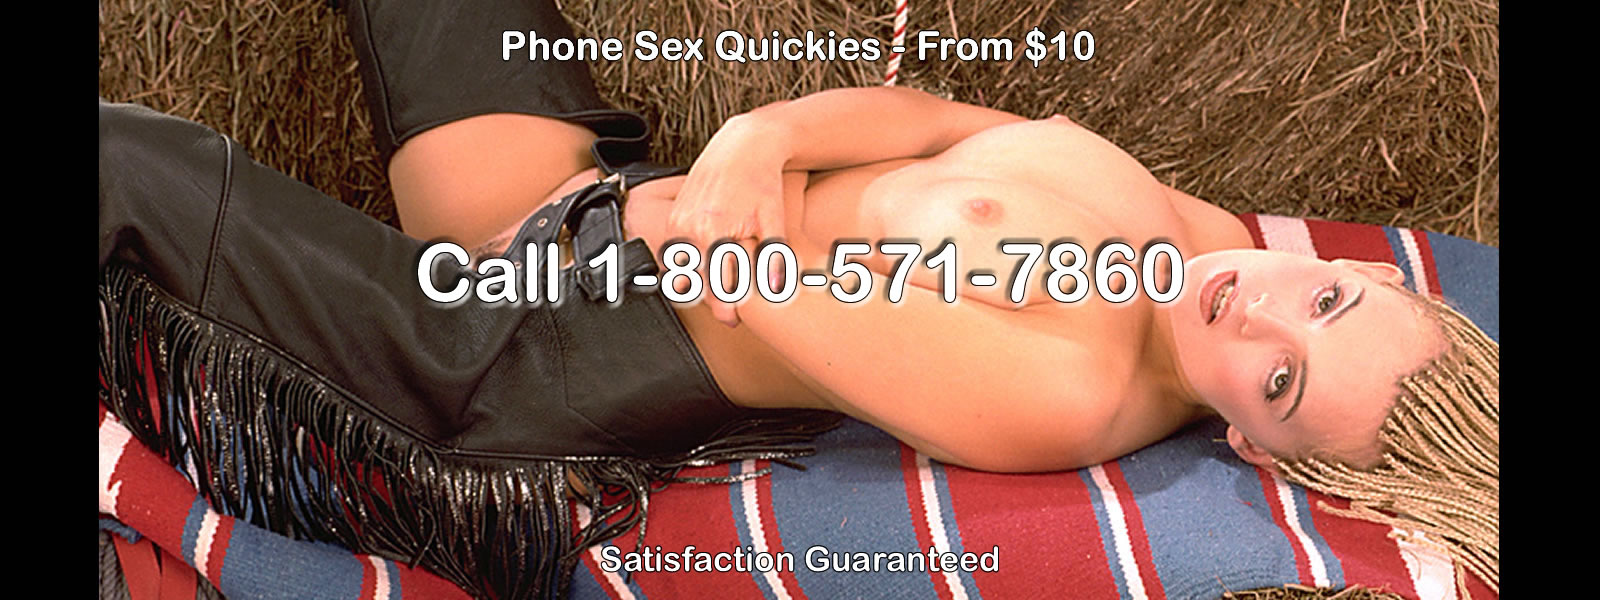 Cheap Phone Sex – Quickies Starting at TEN BUCKS